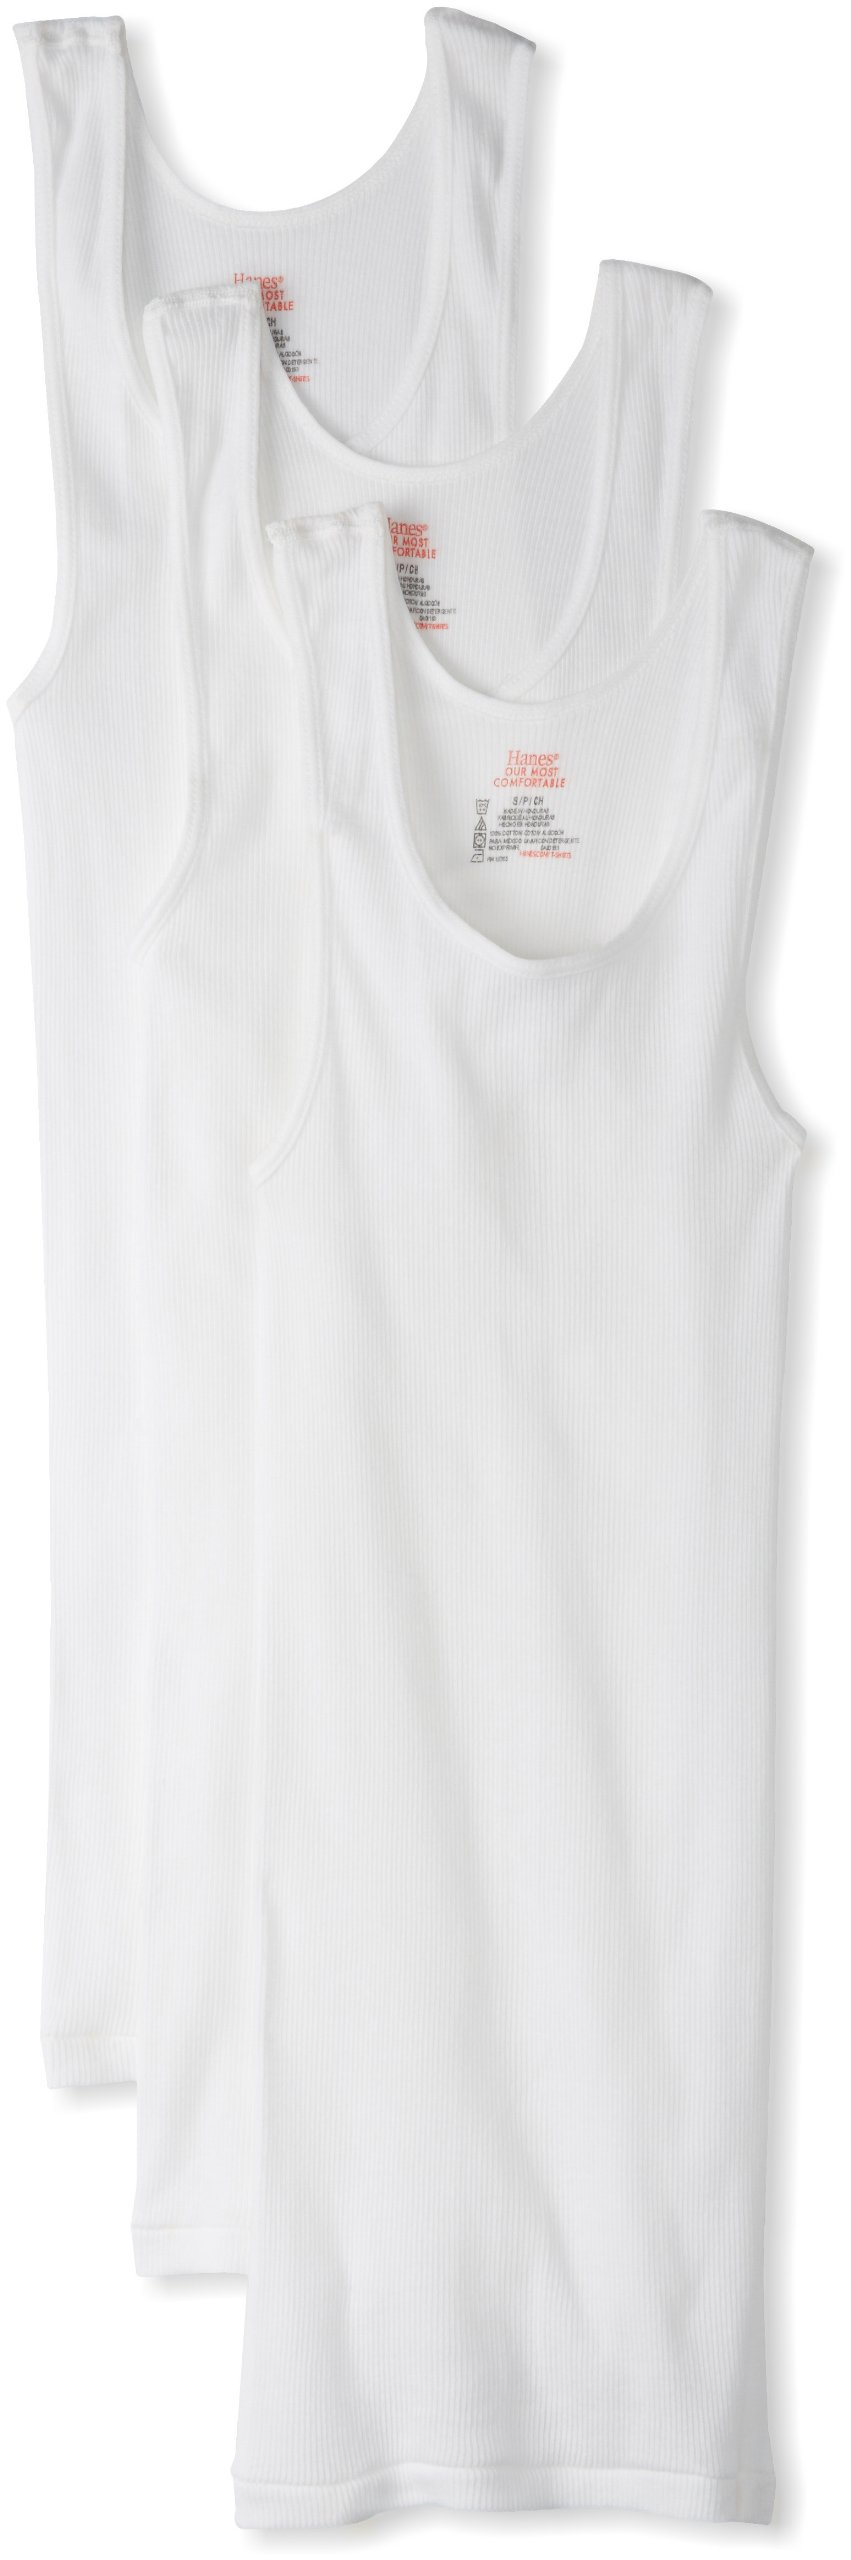 Hanes Ultimate Men's Big and Tall 3-Pack Tagless Tank, White, 4X-Large by Hanes Ultimate